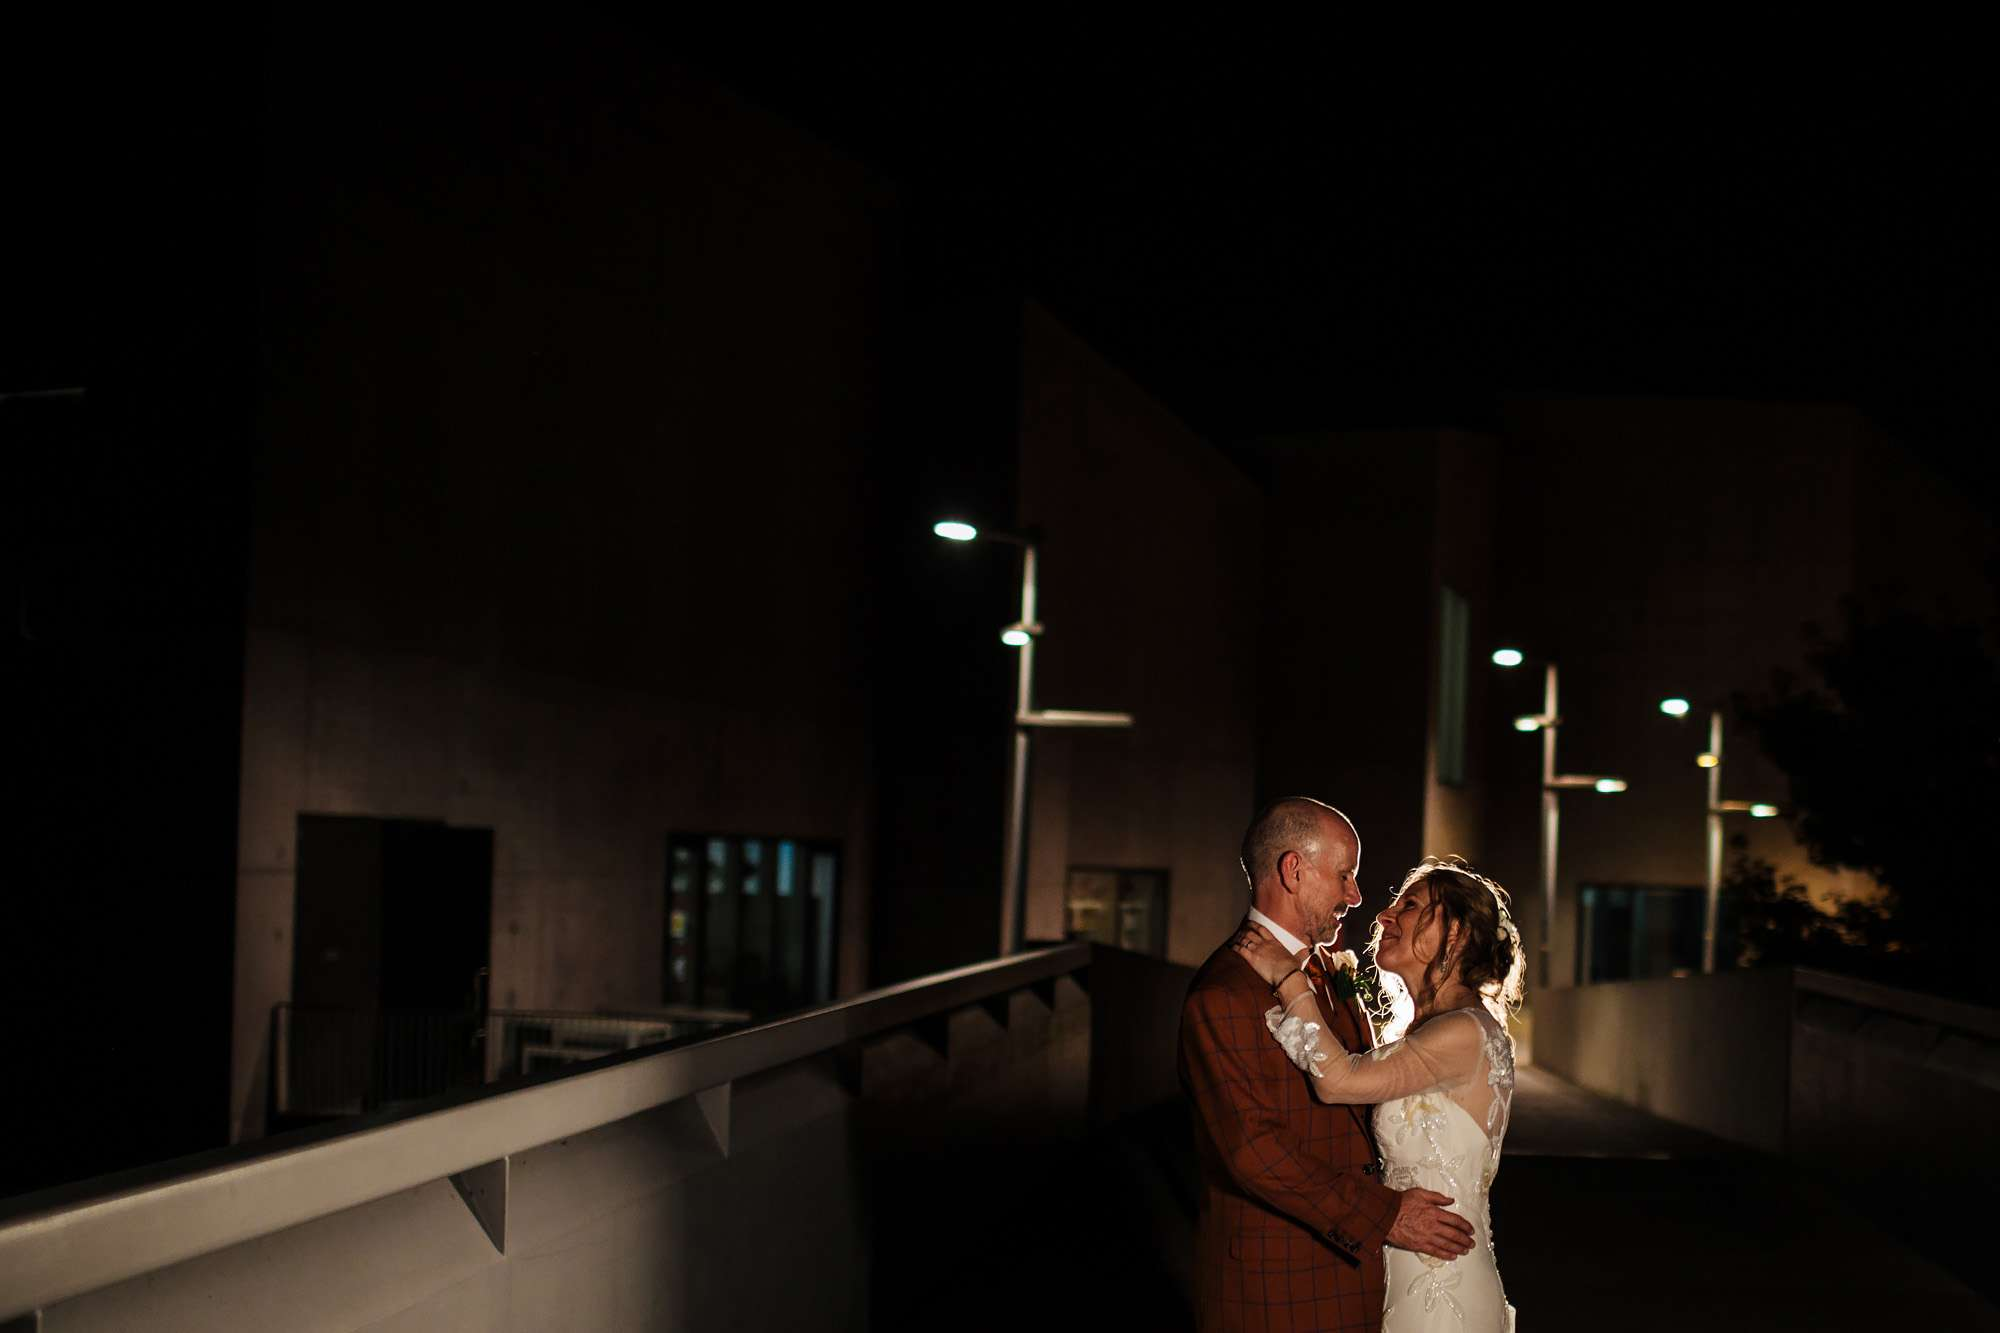 Bride and groom evening portrait at Hepworth Art Gallery